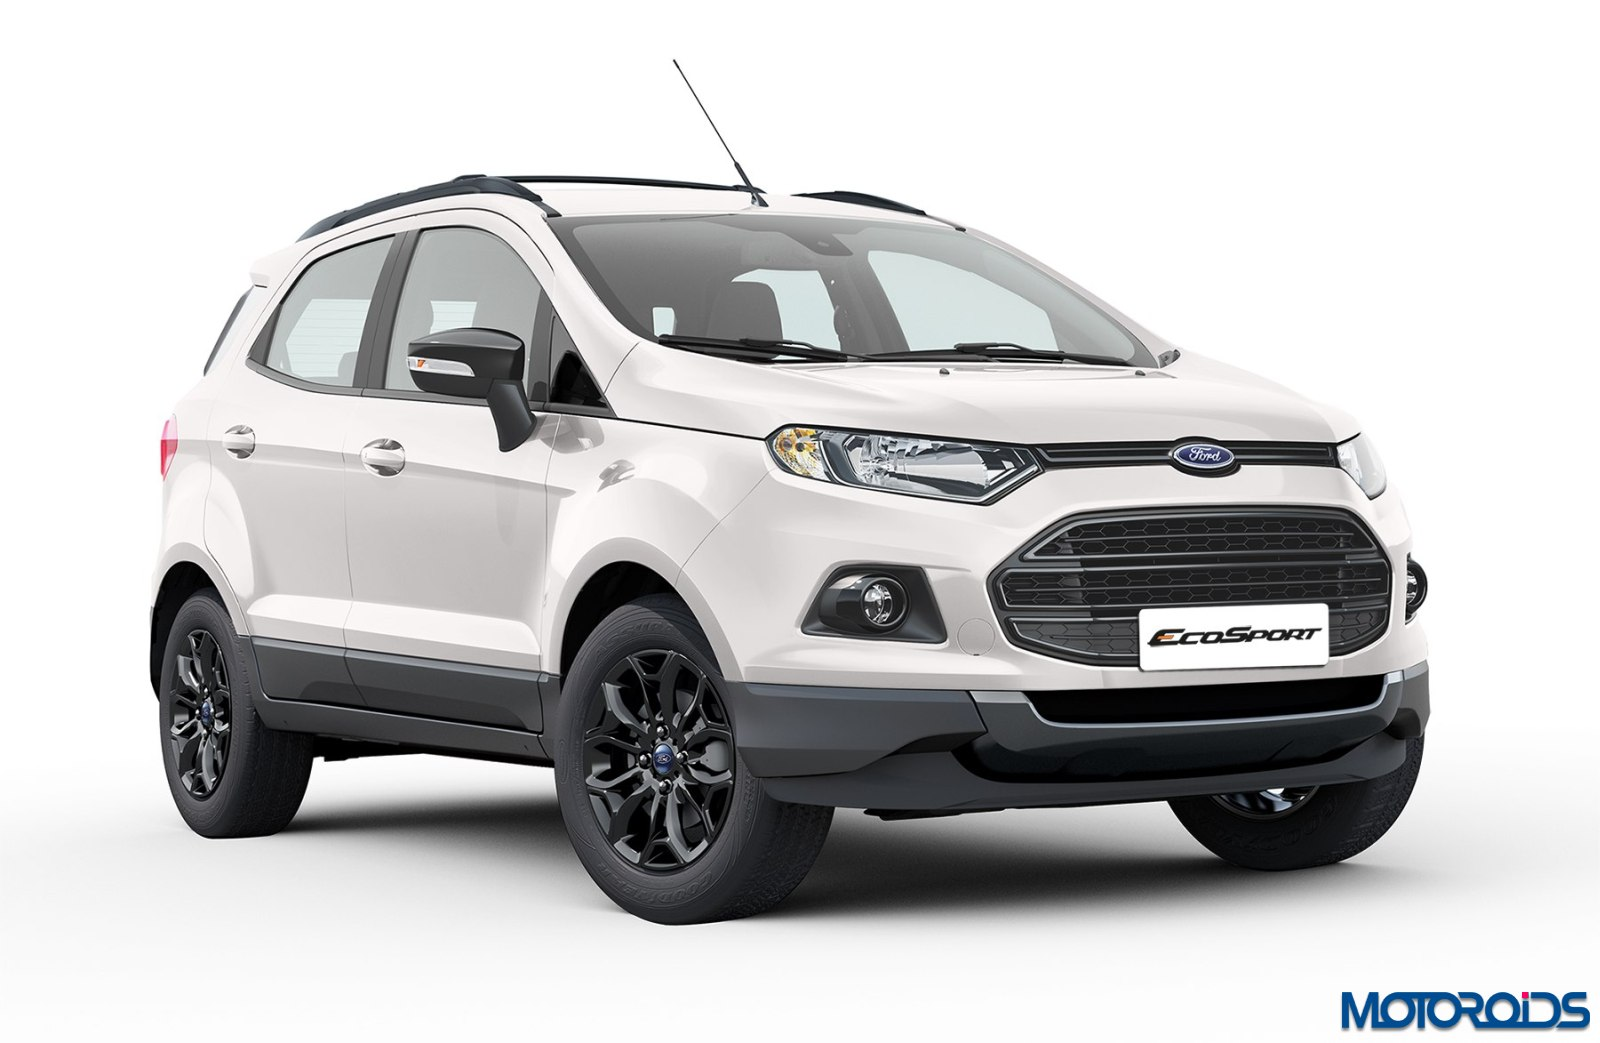 2017 ford ecosport facelift to be unveiled at the 2016 sao paulo auto show in november motoroids. Black Bedroom Furniture Sets. Home Design Ideas